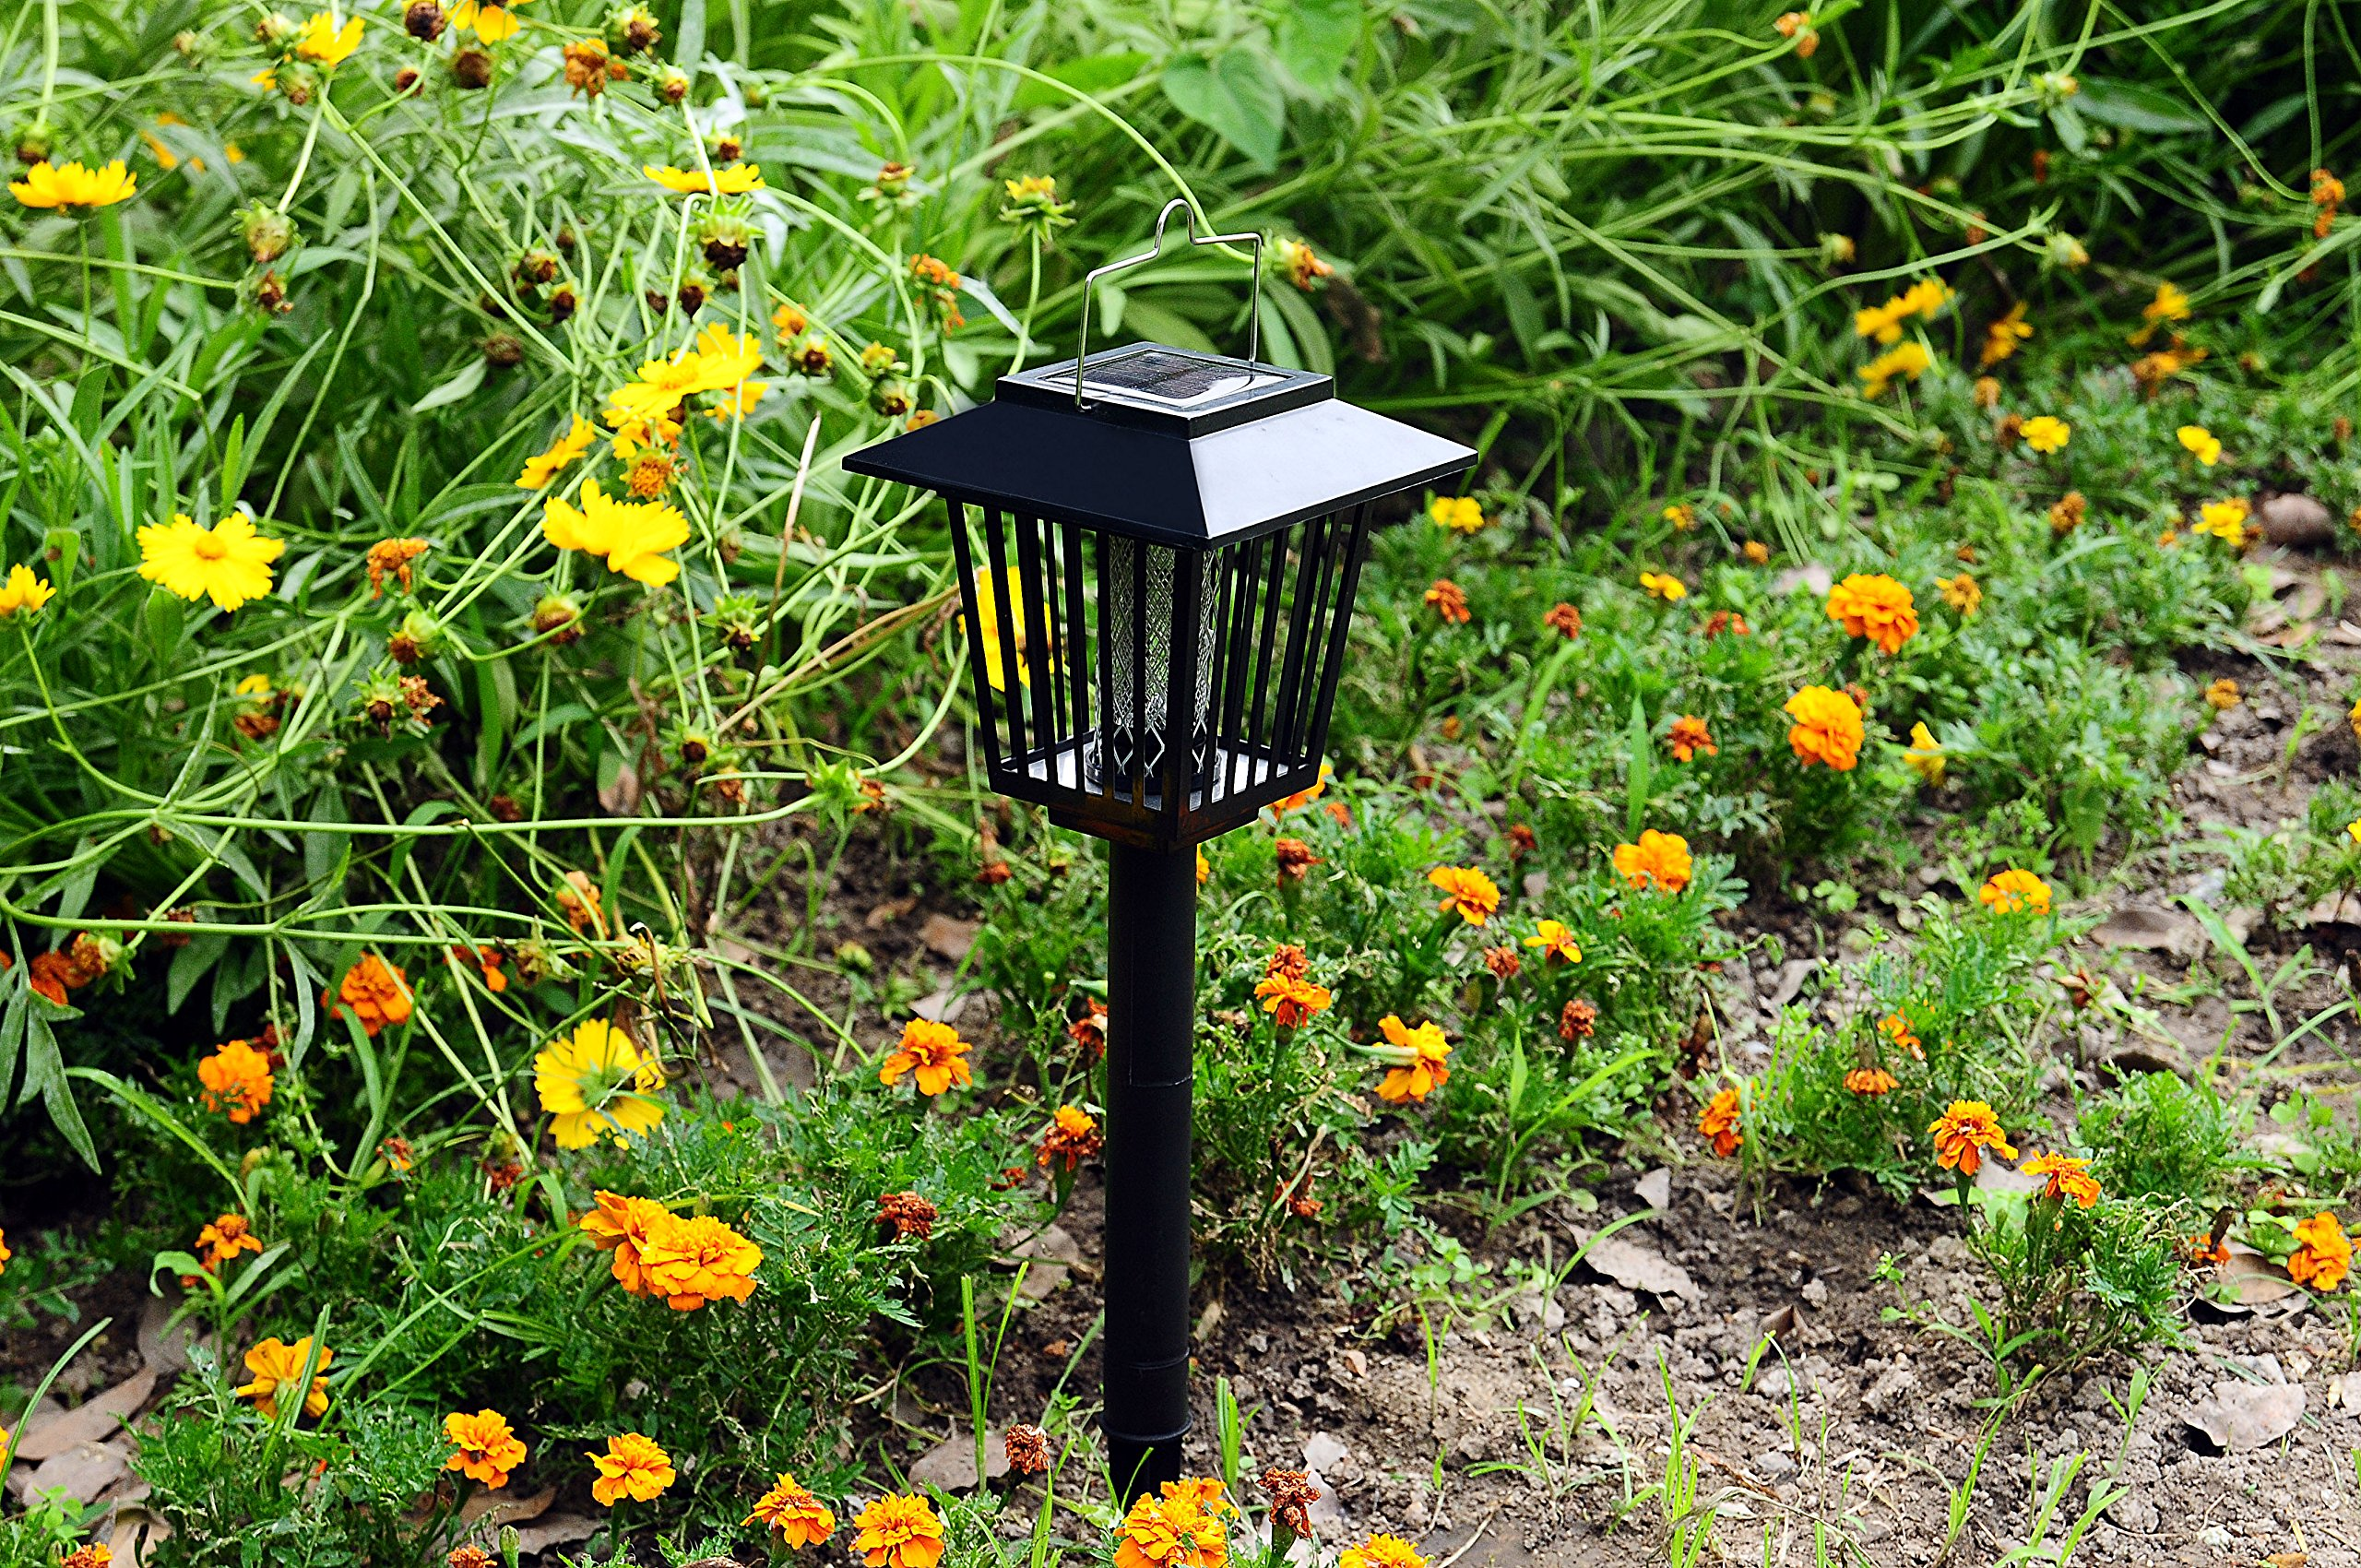 New & Improved Solar Powered Zapper- Enhanced Outdoor Flying Insect Killer- Hang or Stake in the Ground- Cordless Garden Lamp- Portable LED Machine- Best Stinger for Mosquitoes/Moths/Flies (Black) by Solario (Image #6)